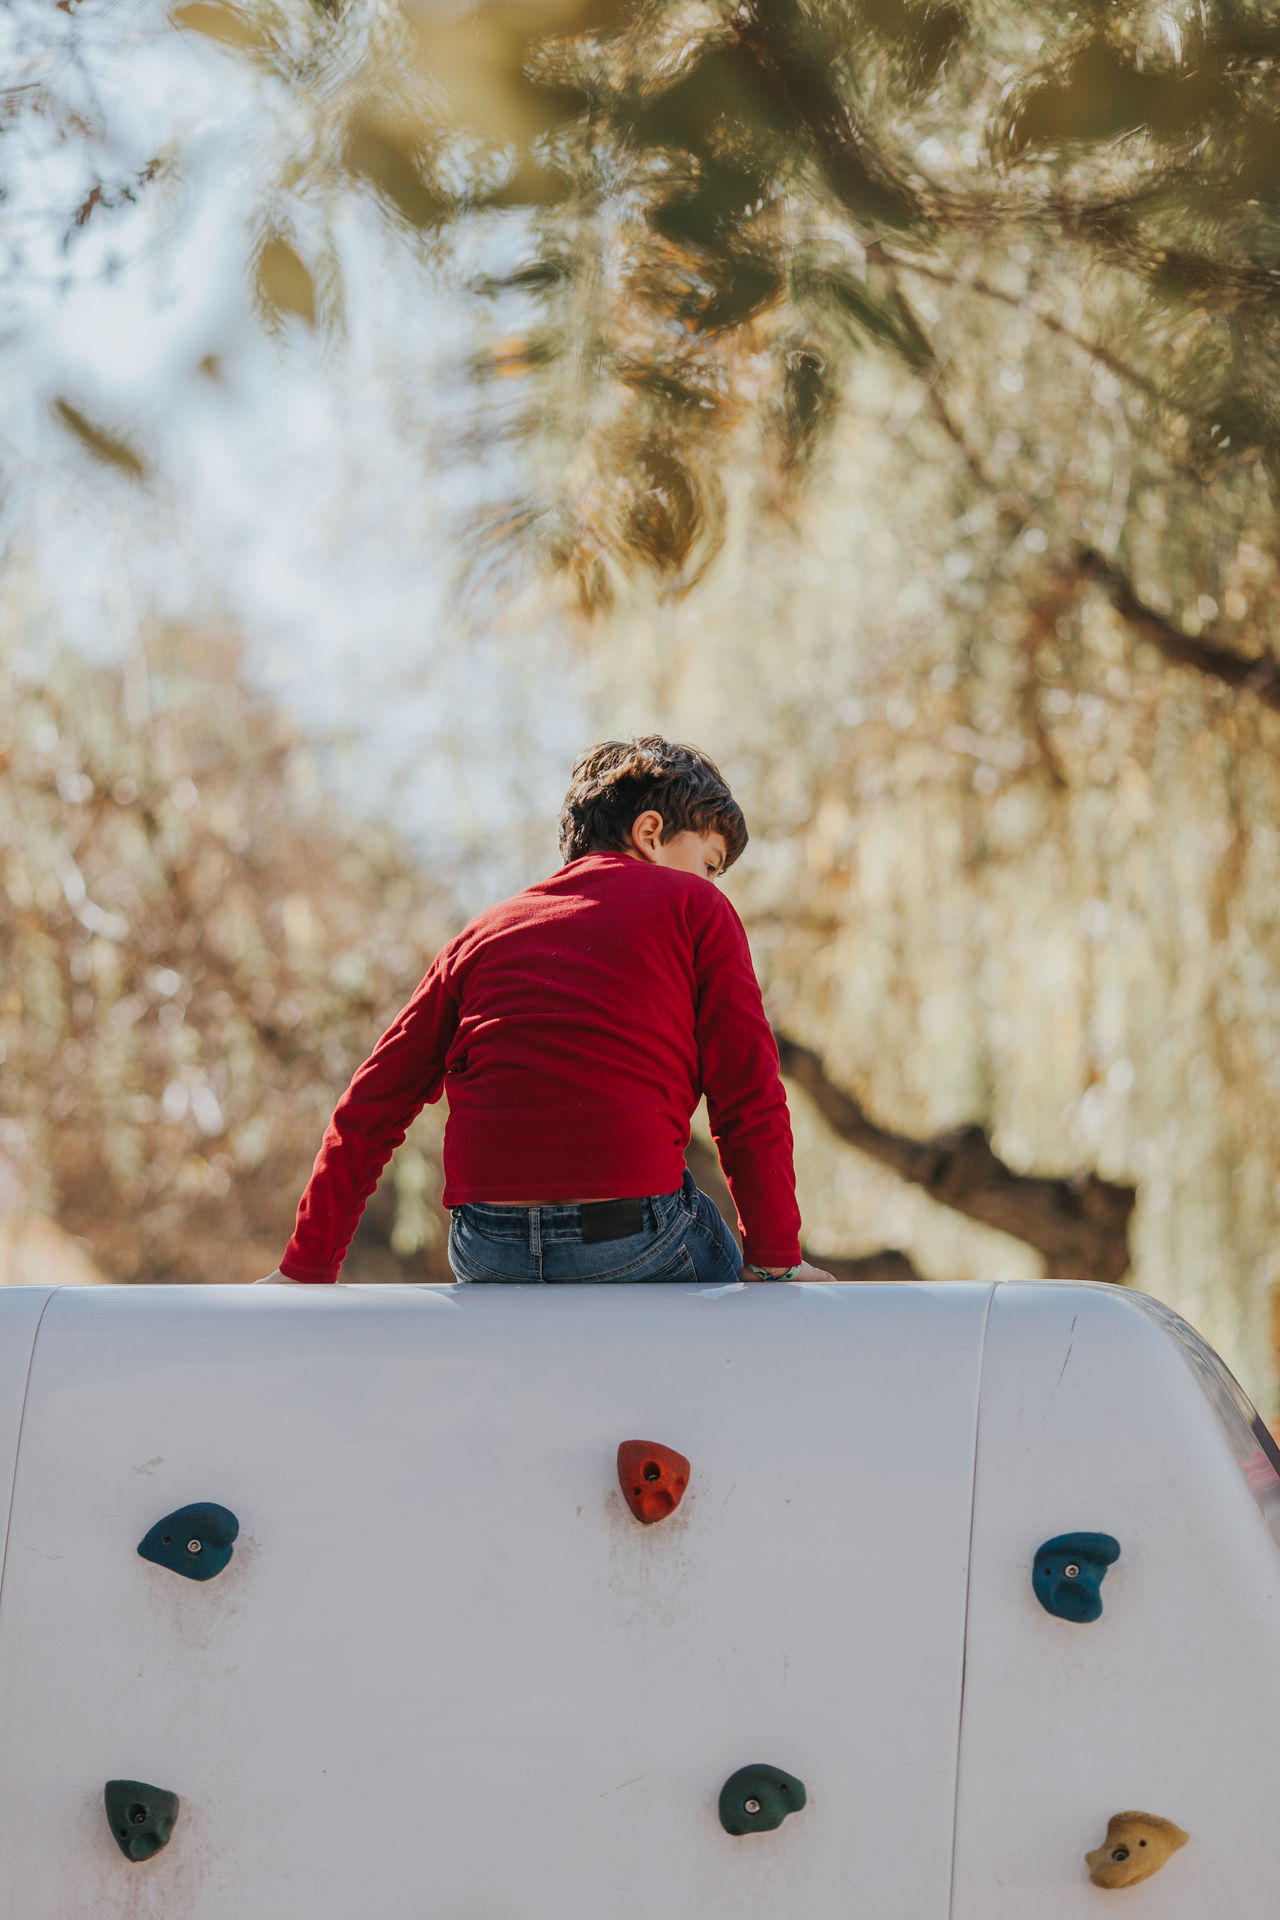 Kids Kids being kids Kids playing bokeh bokeh photography childhood climbing day kid kidsphotography leisure activity lifestyles Nature one person outdoors people real people Rear view sky Tree warm clothing young adult